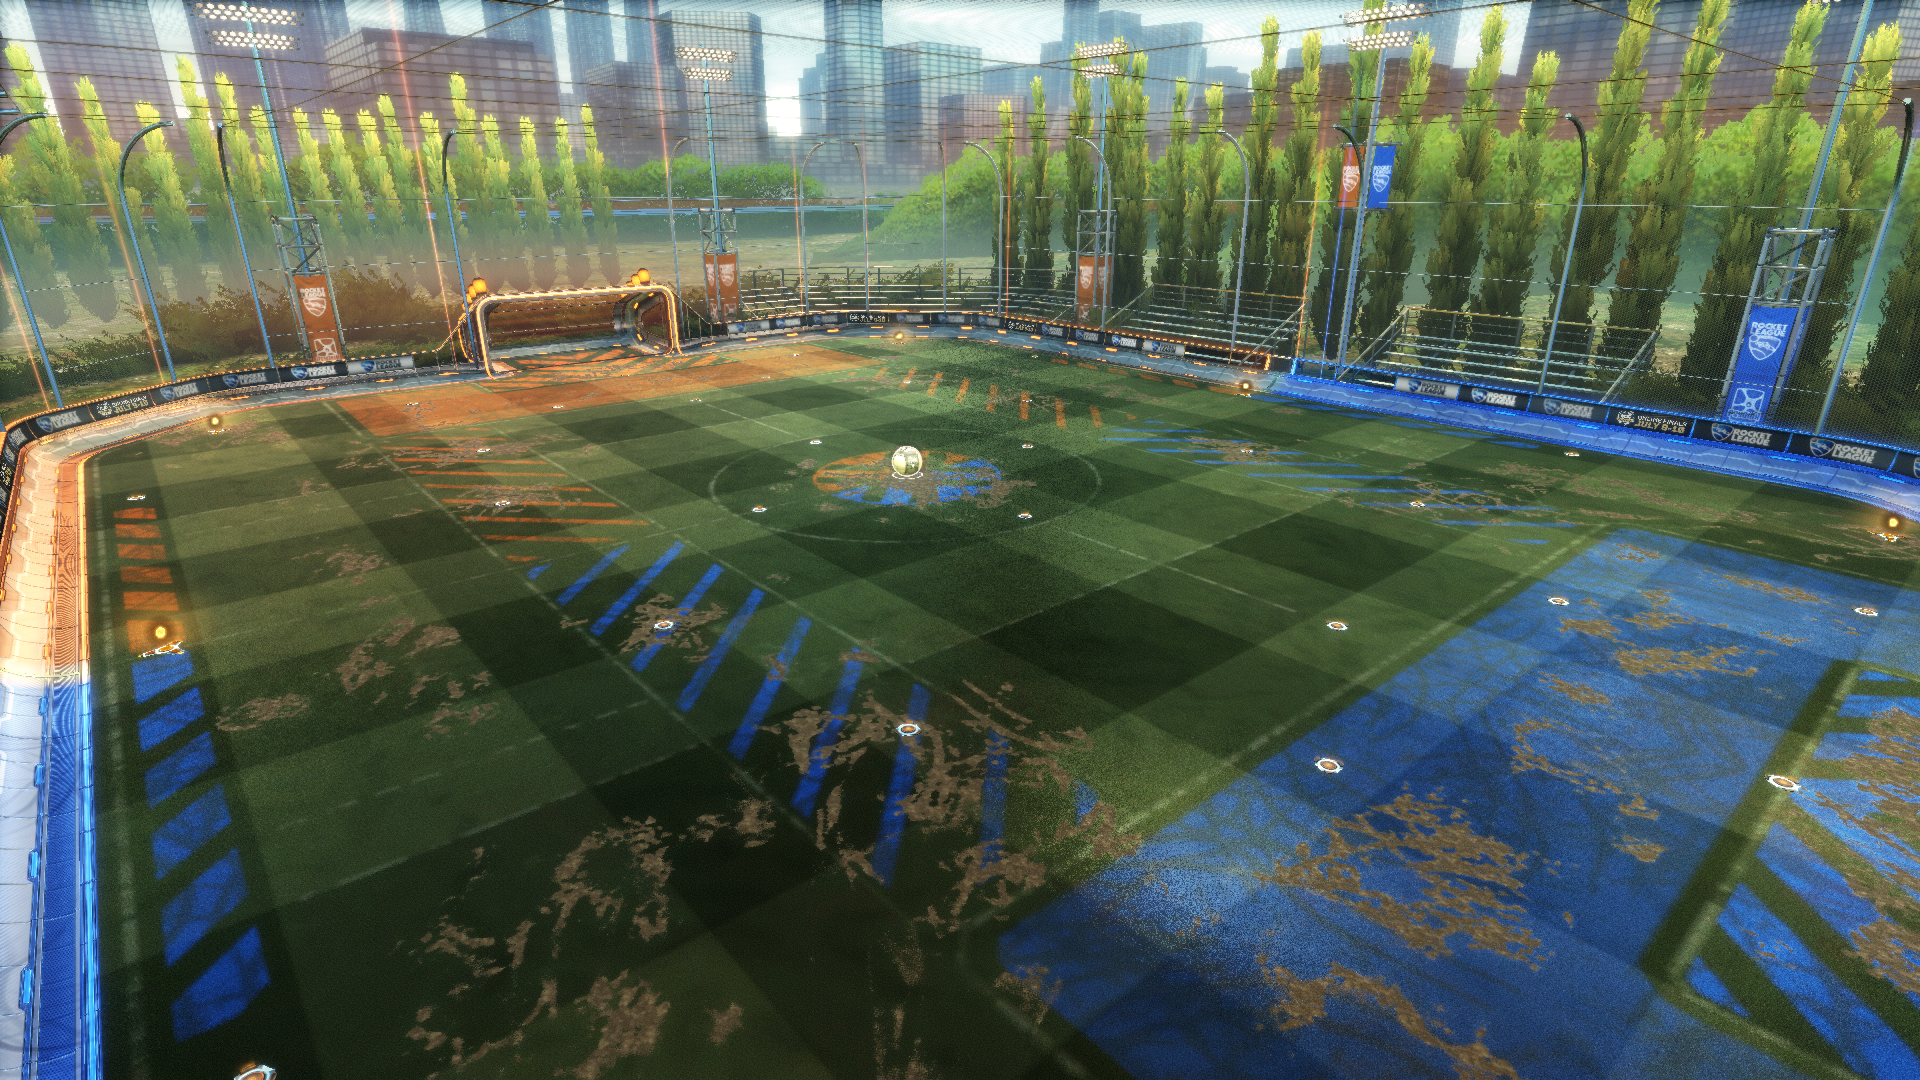 Rocket League Garage >> Beckwith Park | Rocket League Wiki | FANDOM powered by Wikia